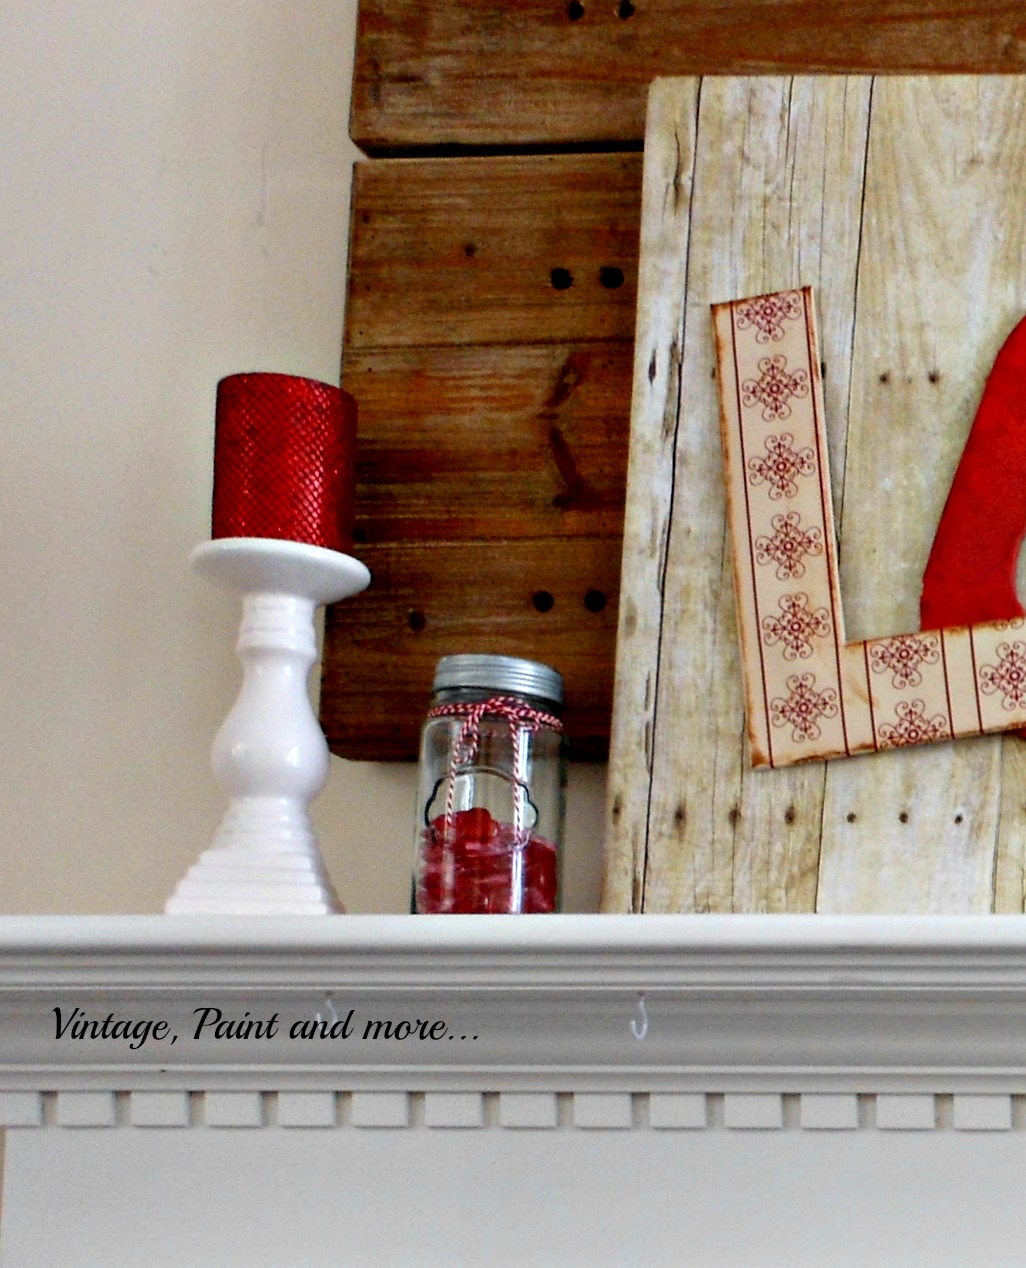 A simple mantel DIY'd for Valentine's with scrapbook paper crafts and mason jar